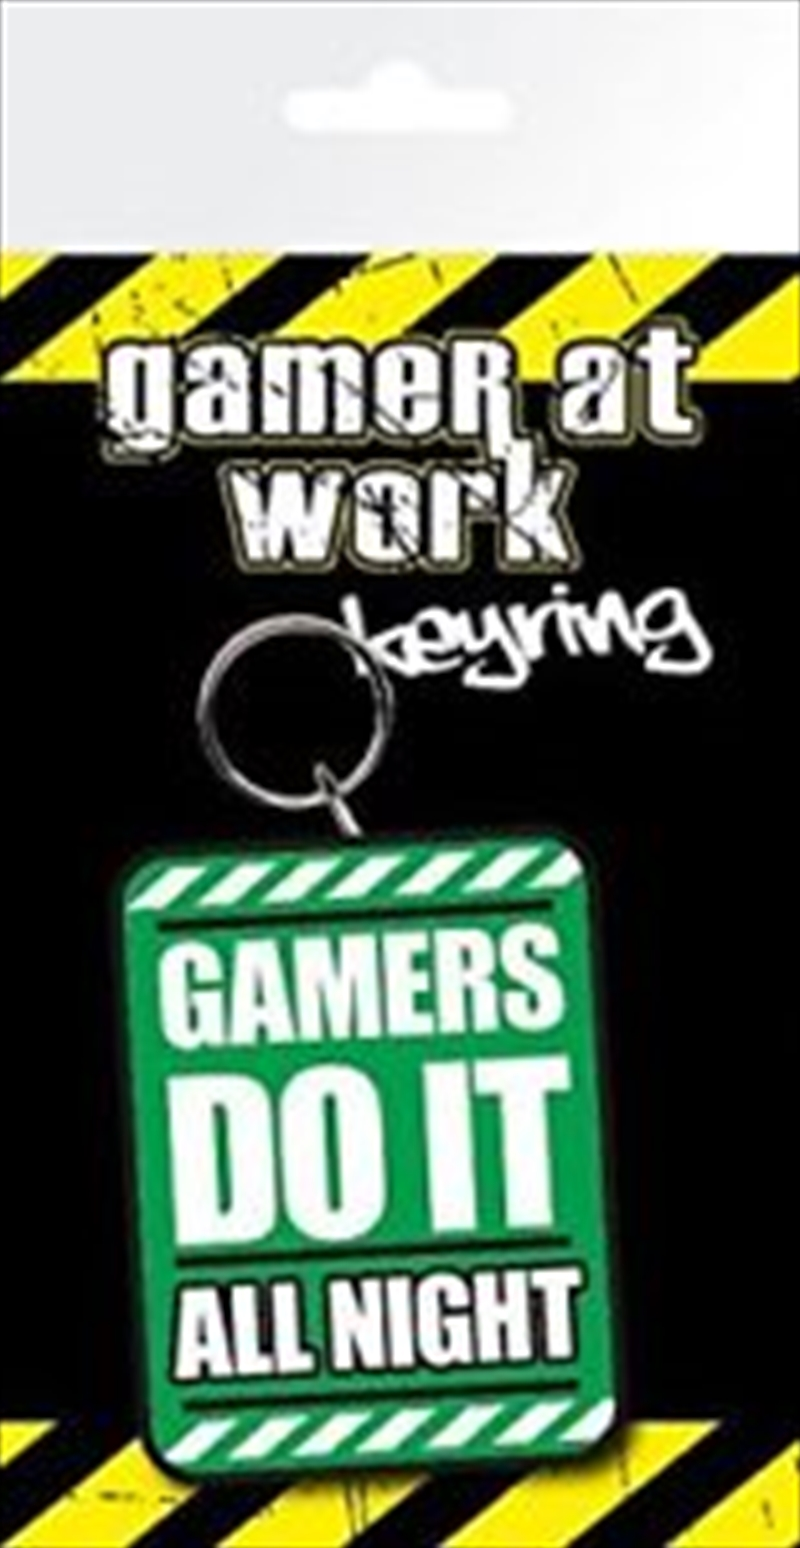 Gaming All Night Keyring | Accessories